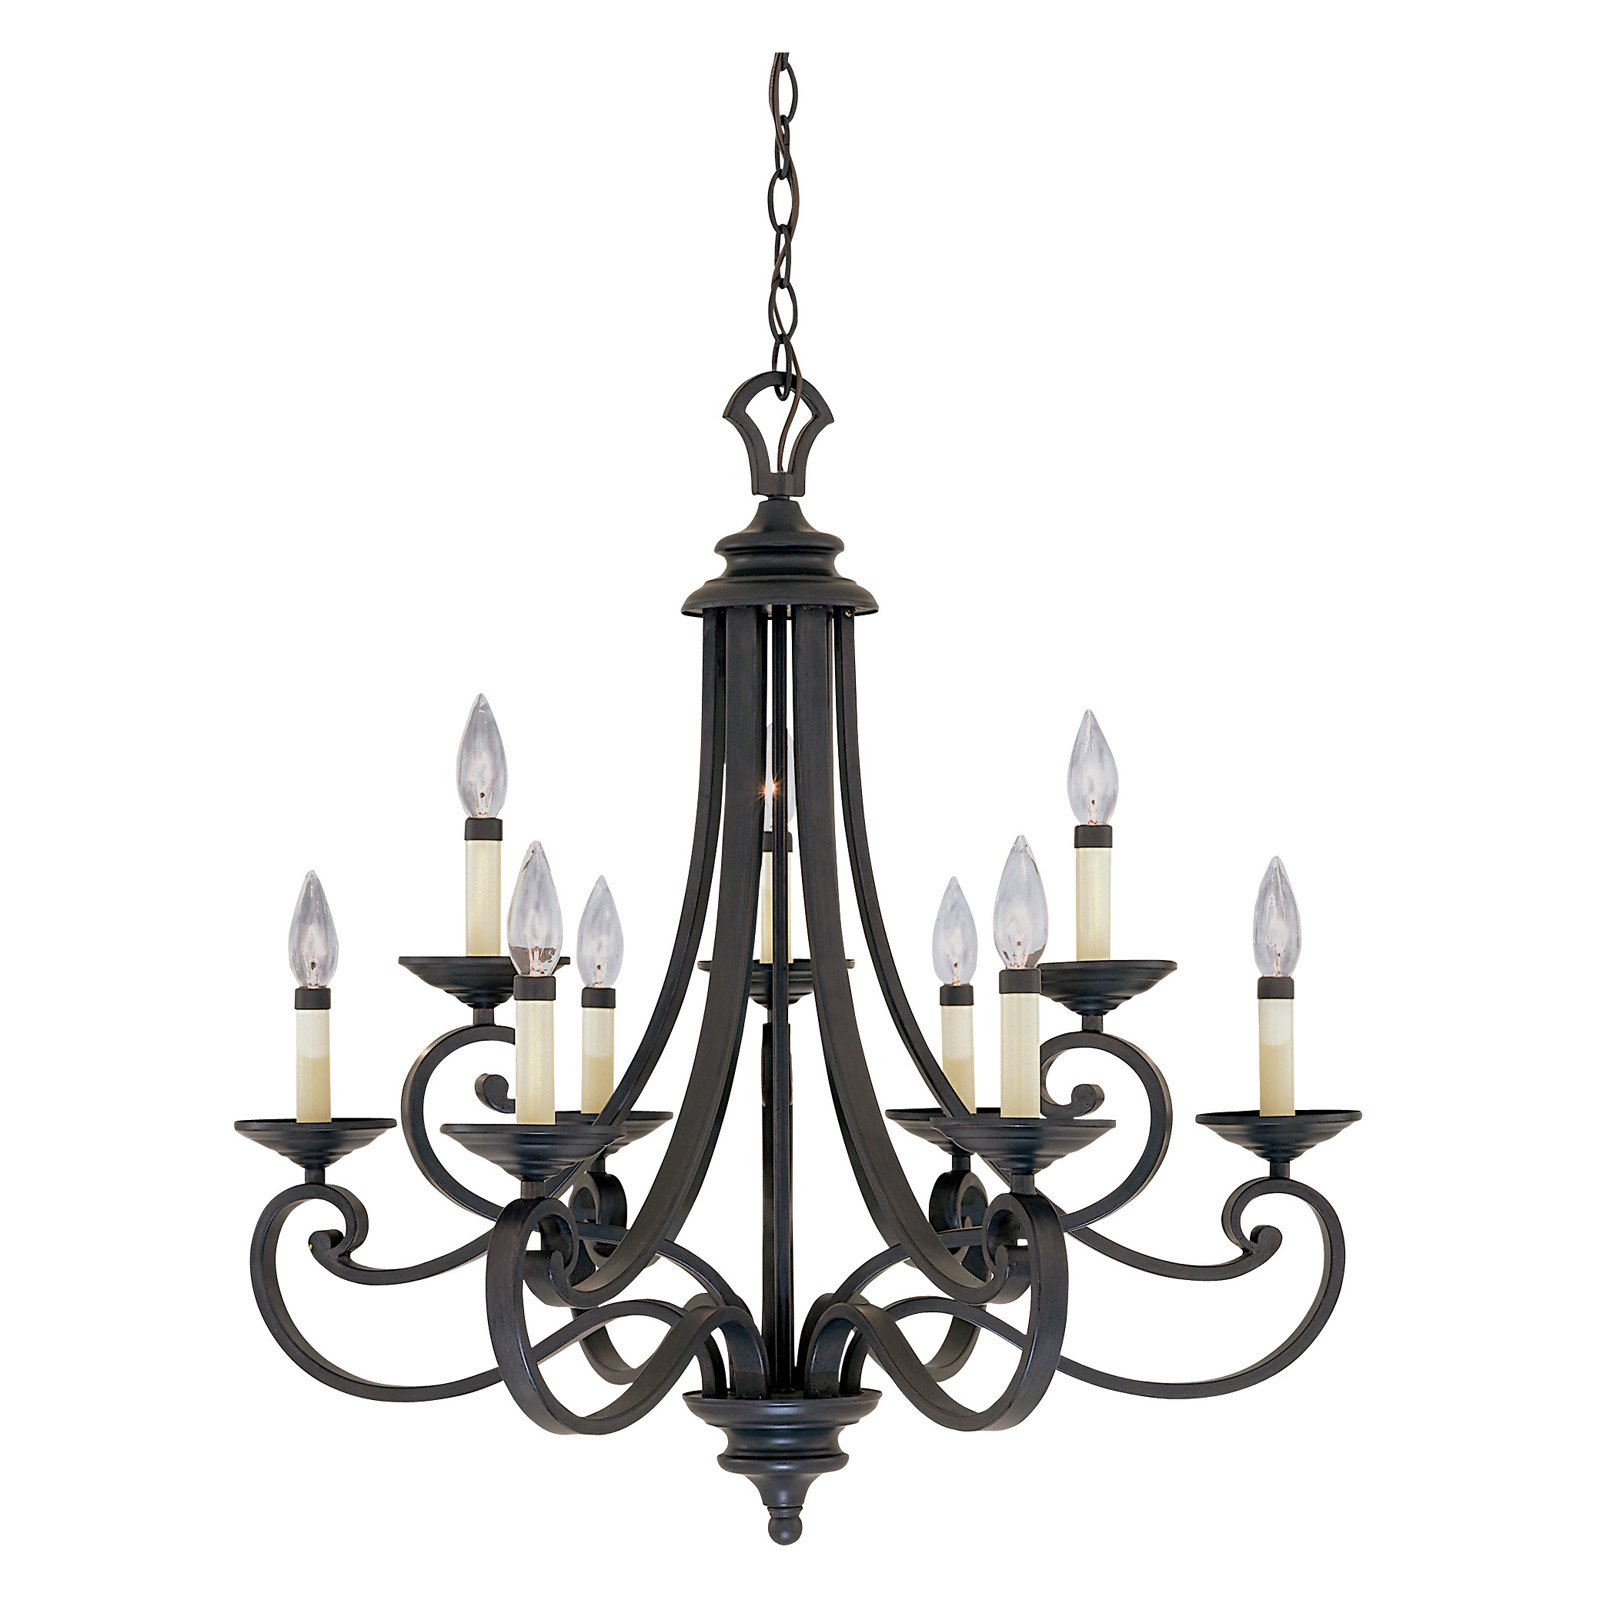 Designers Fountain 9039 Barcelona 9 Light Chandelier in Natural Iron Finish